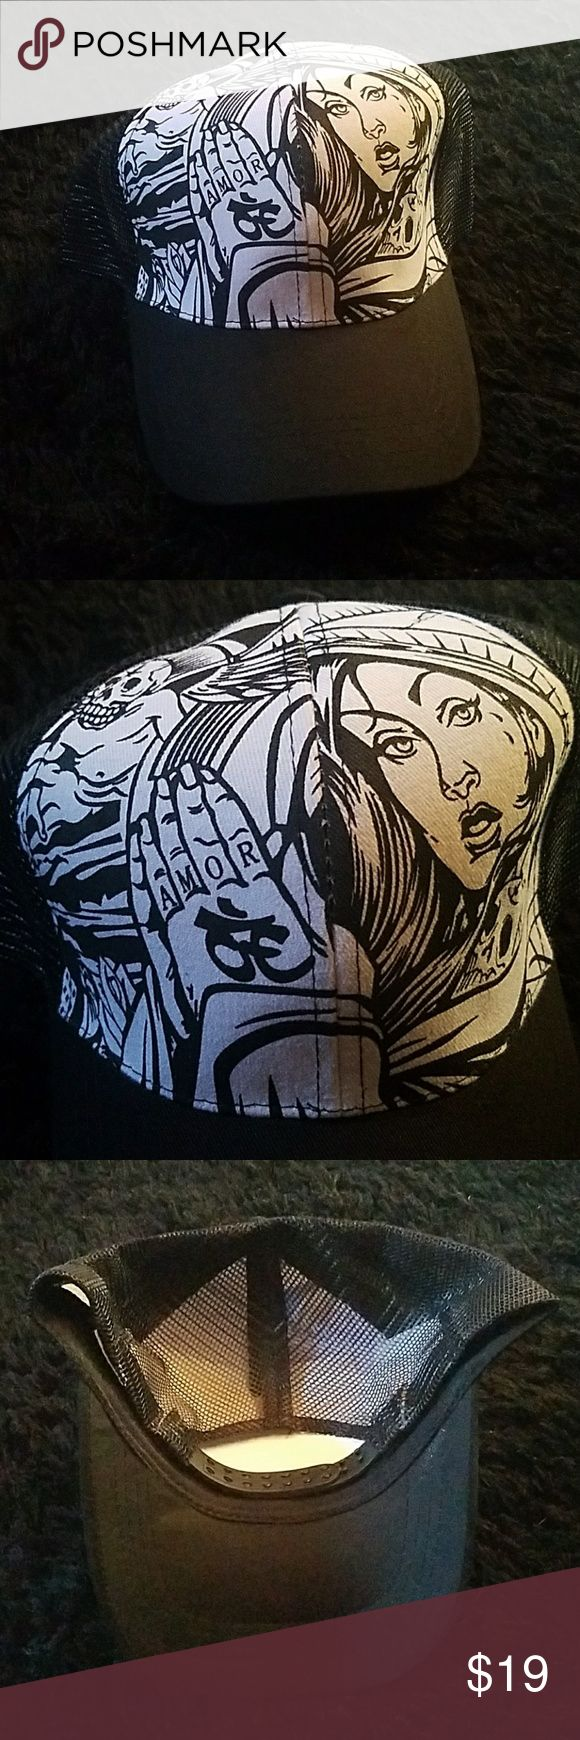 Tattoo mesh hat adjustable black NWOT snapback Tattoo mesh hat adjustable snapback black and white or color it your own way this is NWOT never worn great looking item Accessories Hats